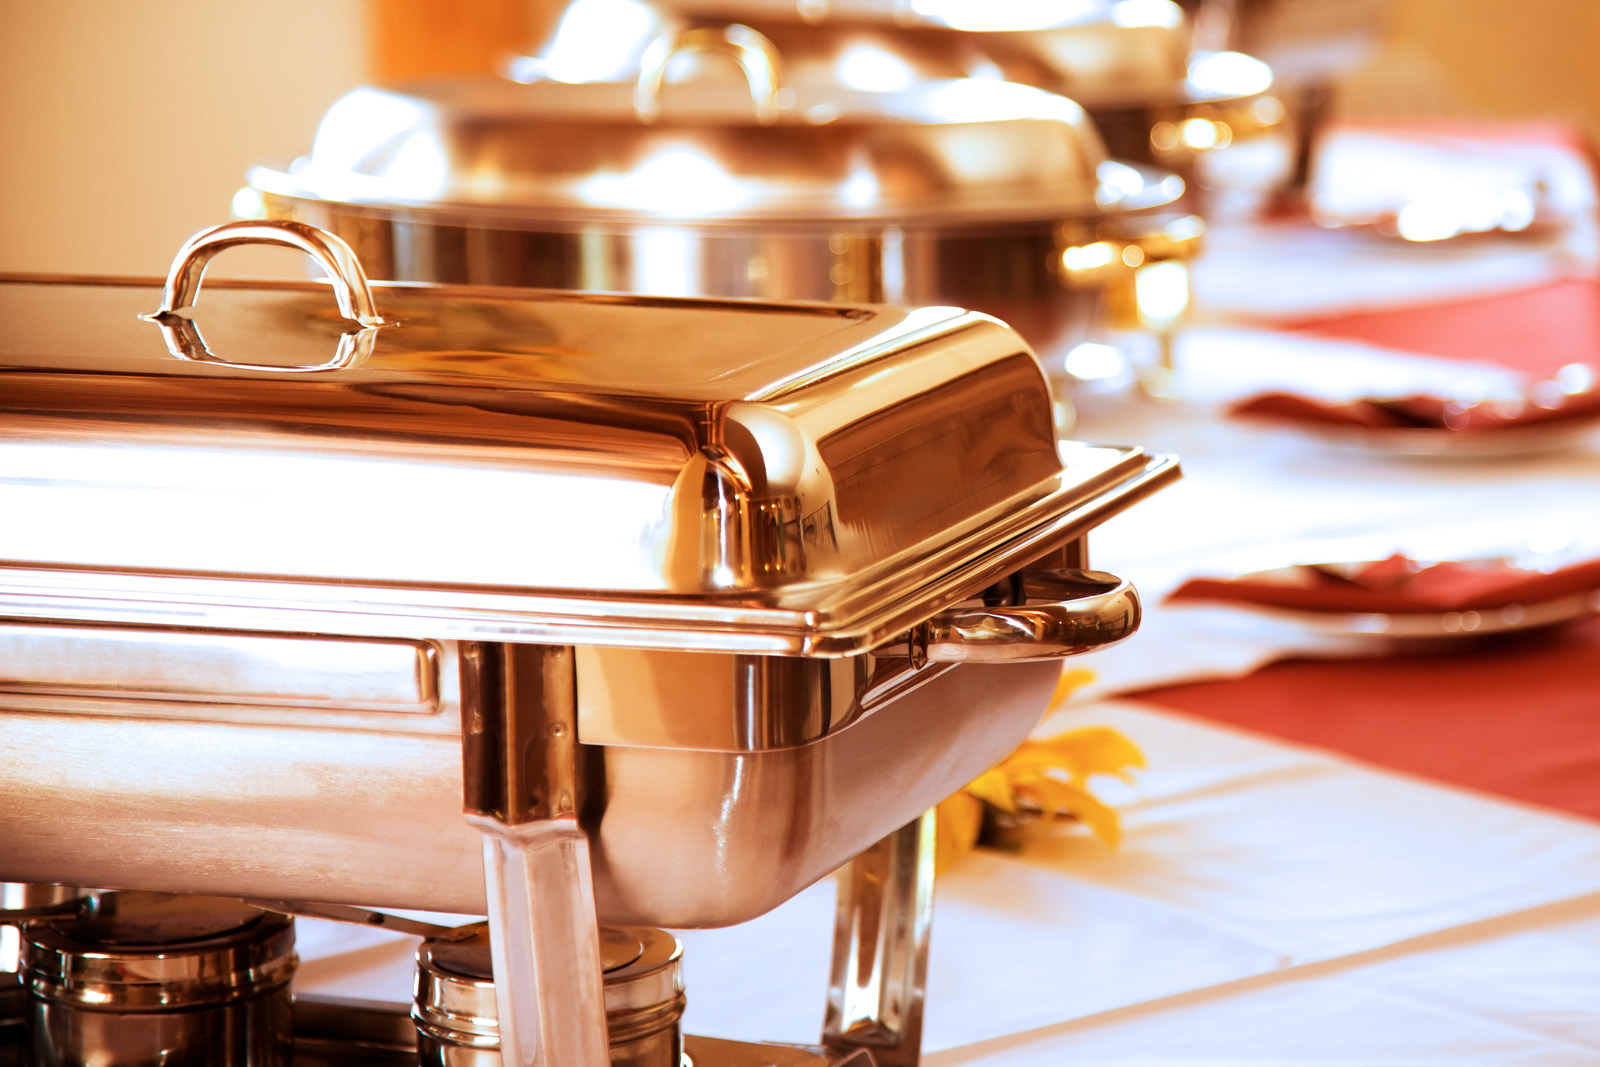 Catering & Partyservice Alaturka Wuppertal